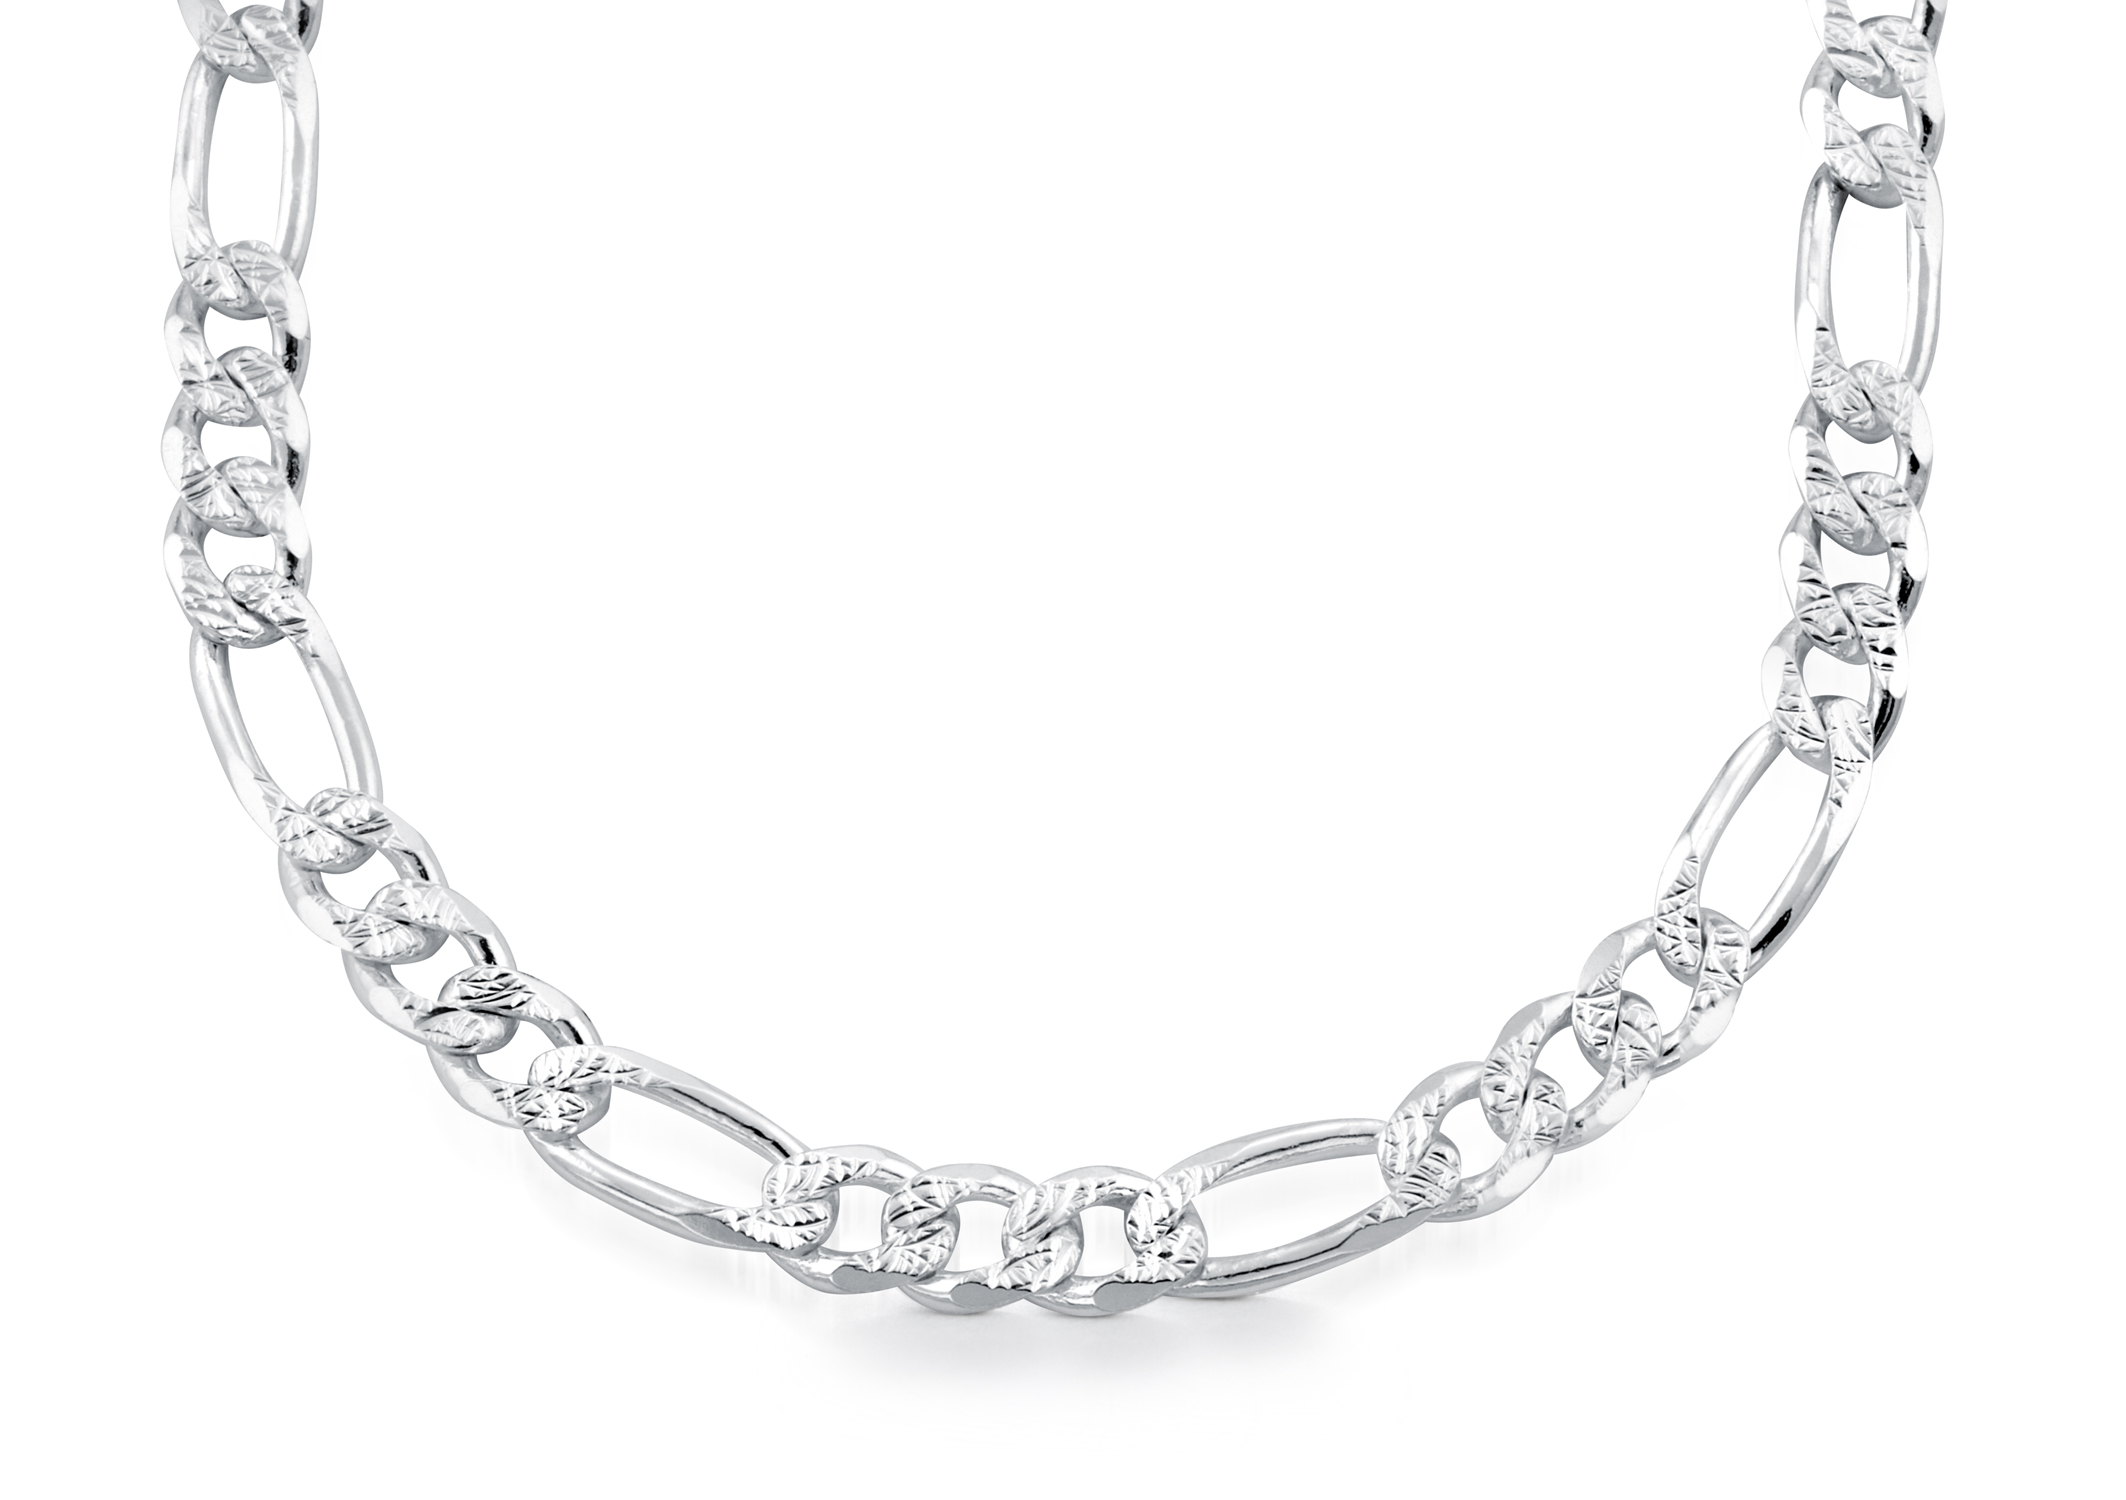 24'' Figaro chain for men - Sterling silver